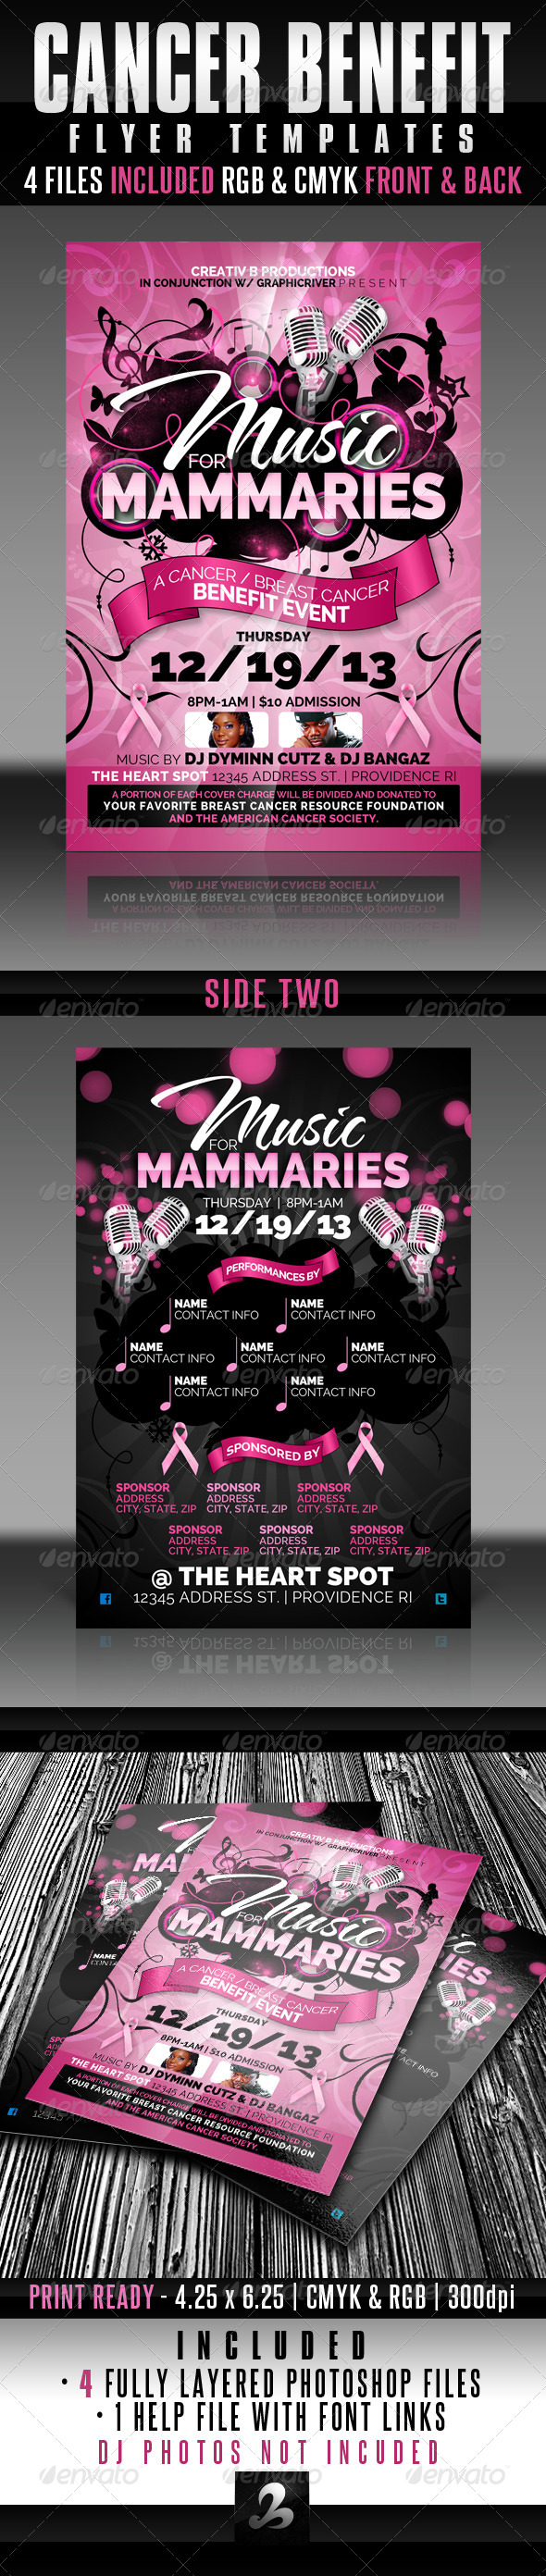 Cancer Benefit Flyer Templates